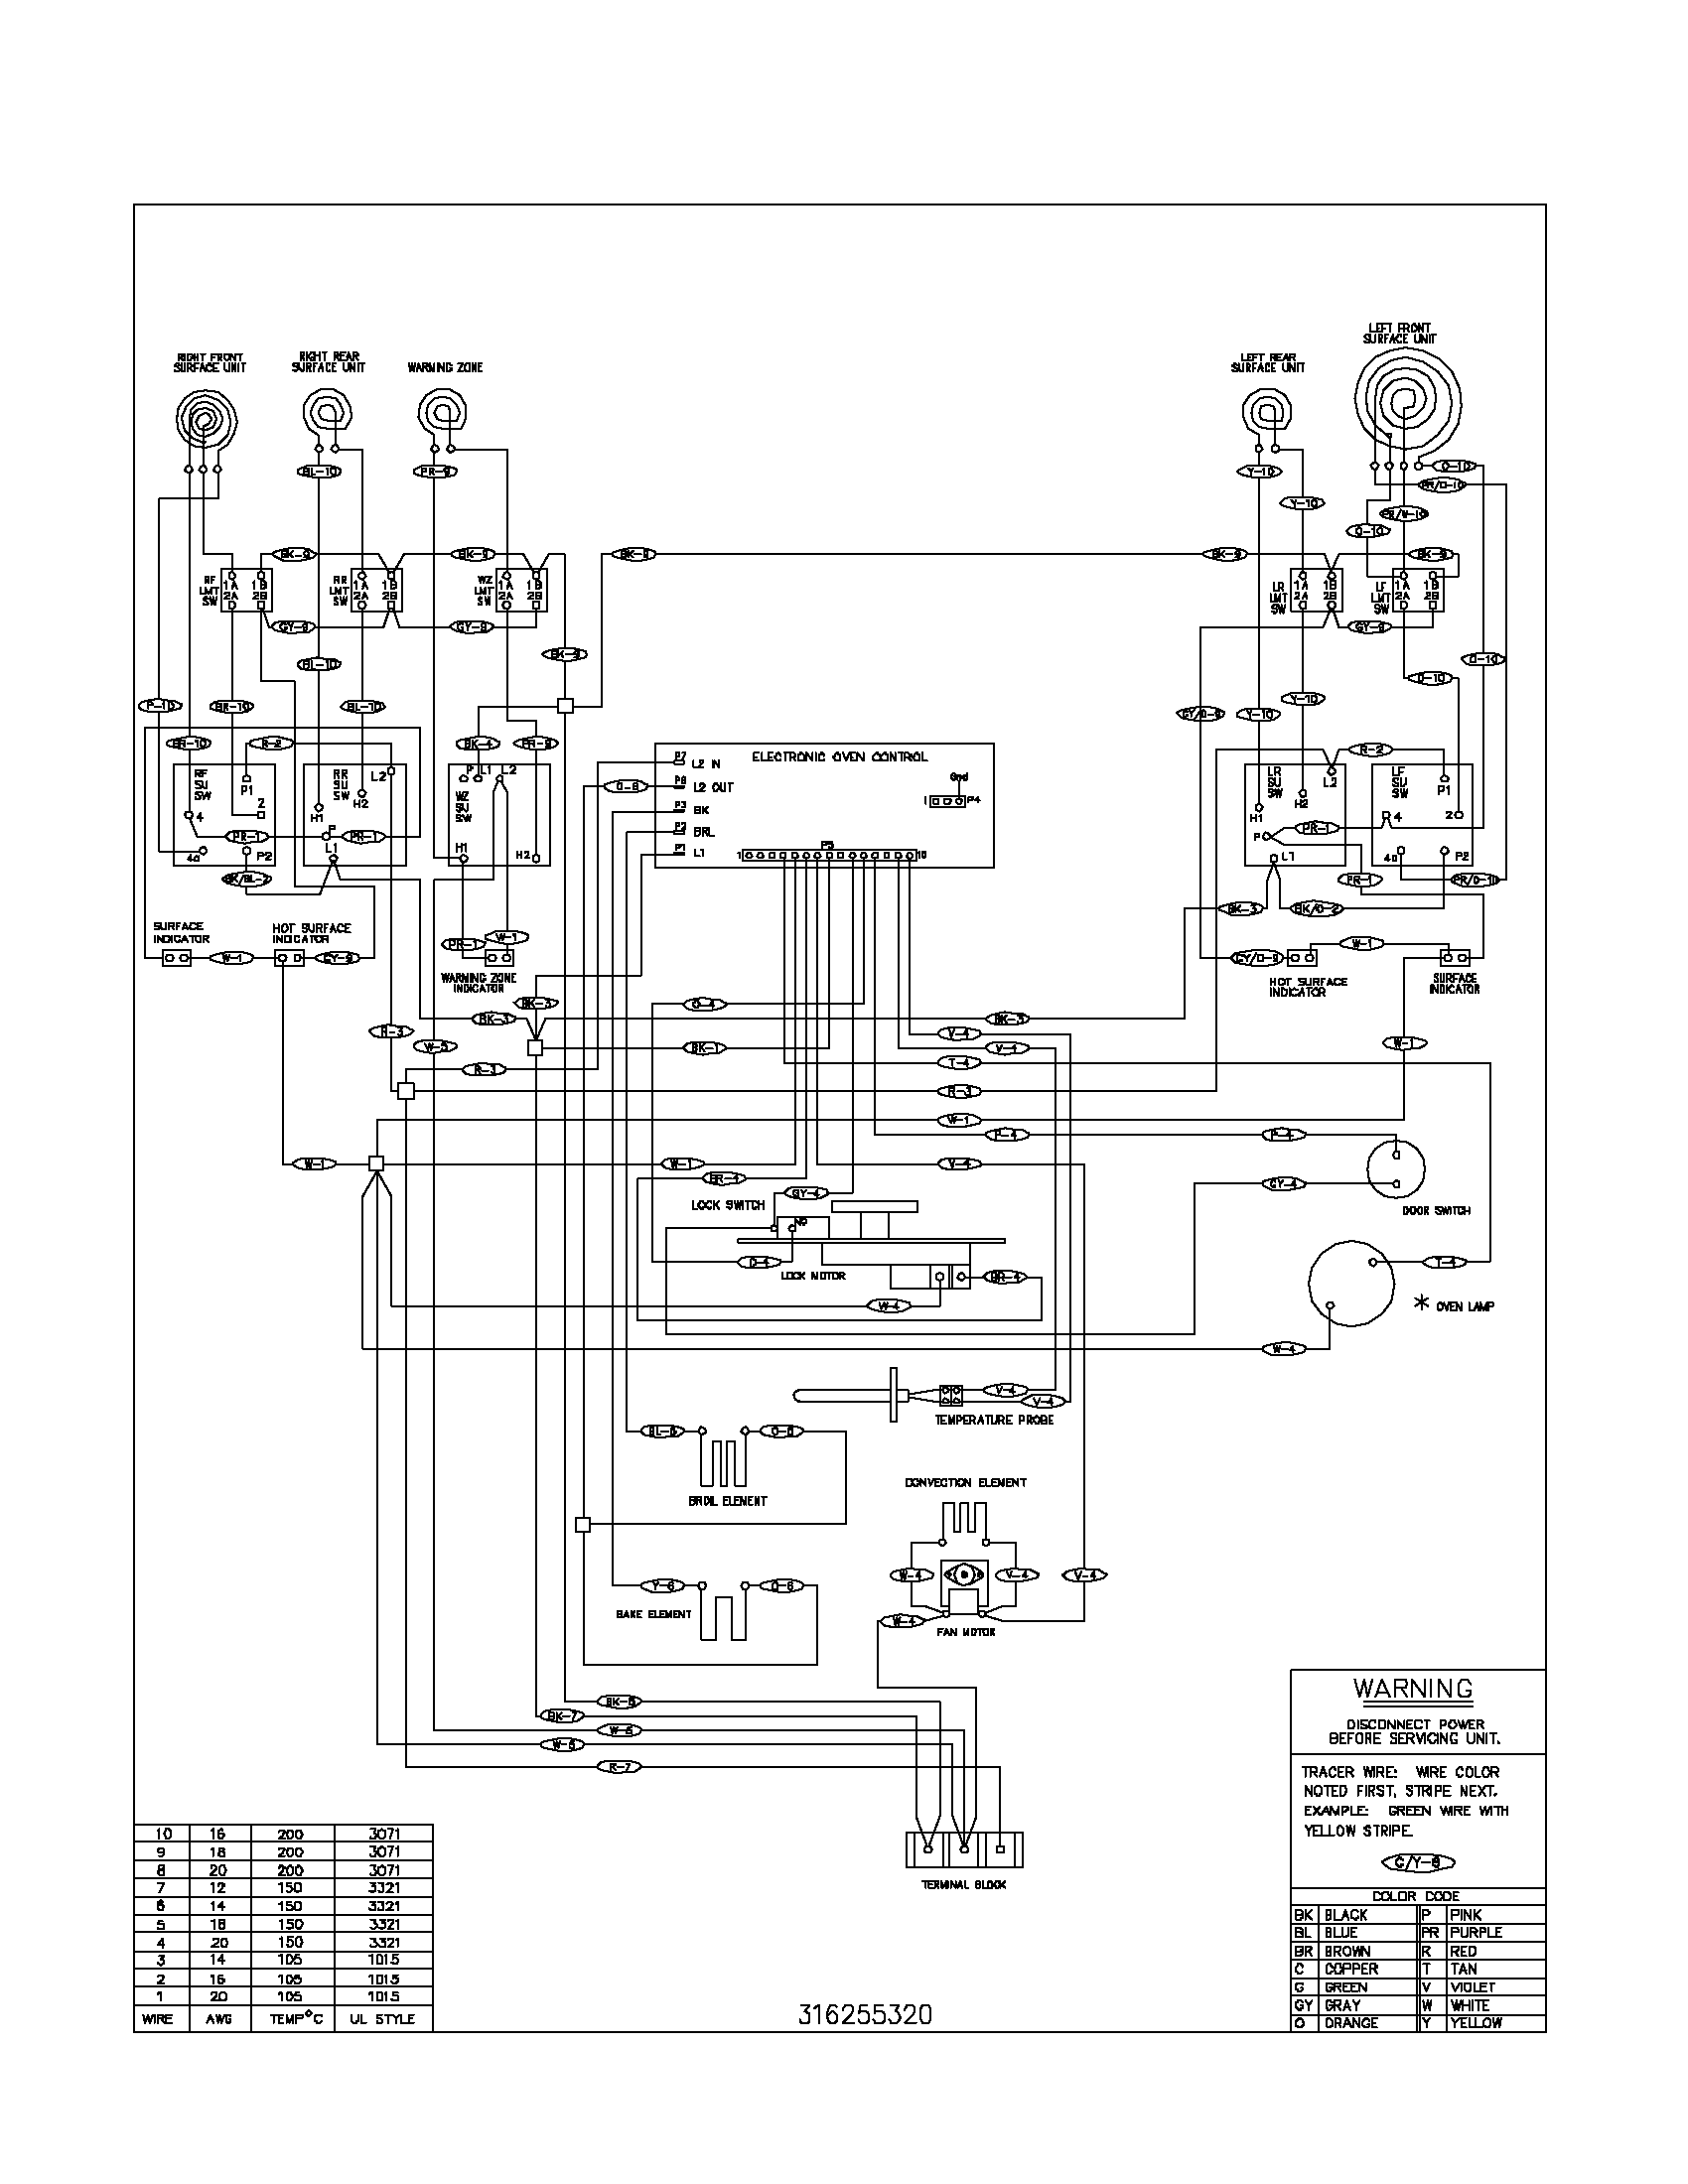 wiring diagram parts whirlpool fefl88acc electric range timer stove clocks and westinghouse oven element wiring diagram at gsmx.co